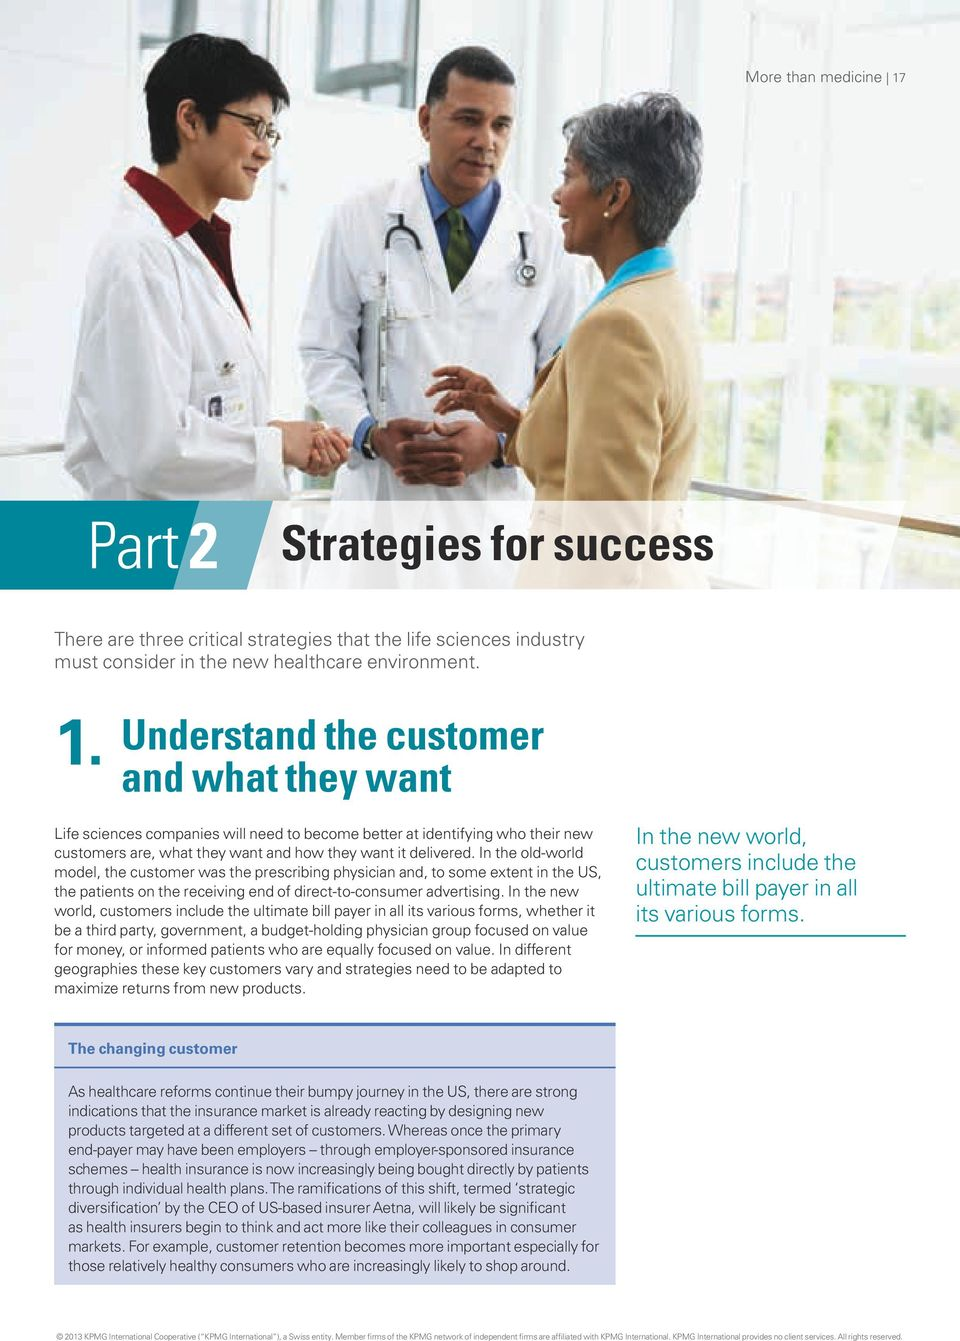 Understand the customer and what they want Life sciences companies will need to become better at identifying who their new customers are, what they want and how they want it delivered.